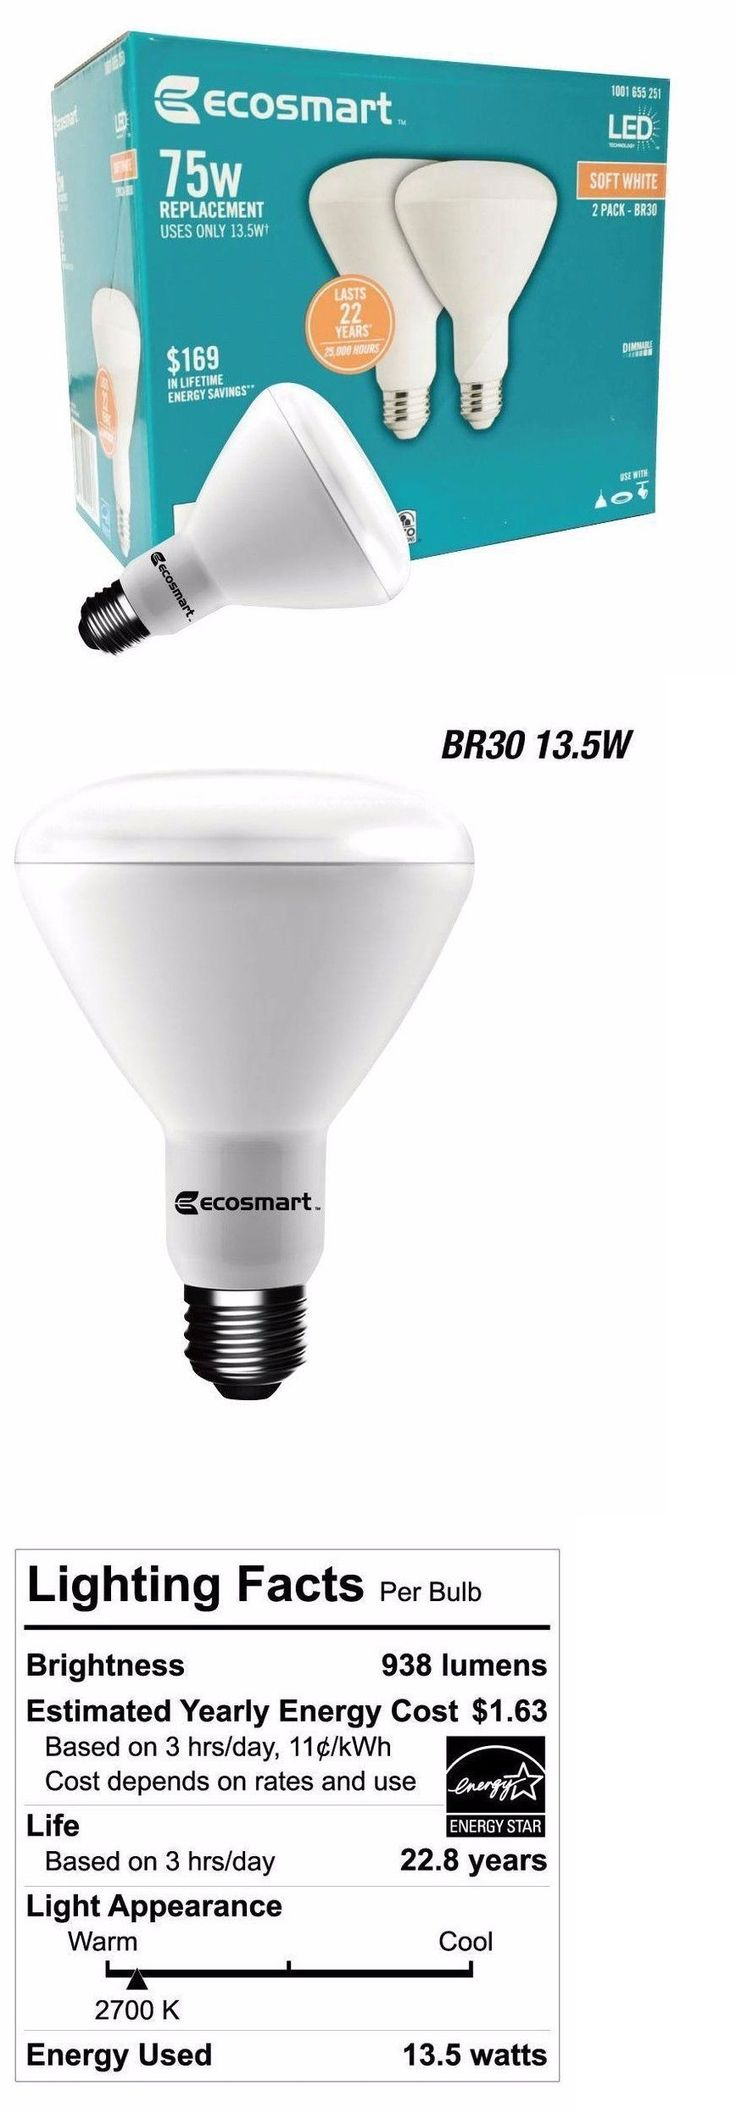 1000 images about lightbulb things on pinterest lightbulbs bulbs - Light Bulbs 20706 Qty 2 To 24 Ecosmart 75w Equivalent Soft White Br30 Dimmable